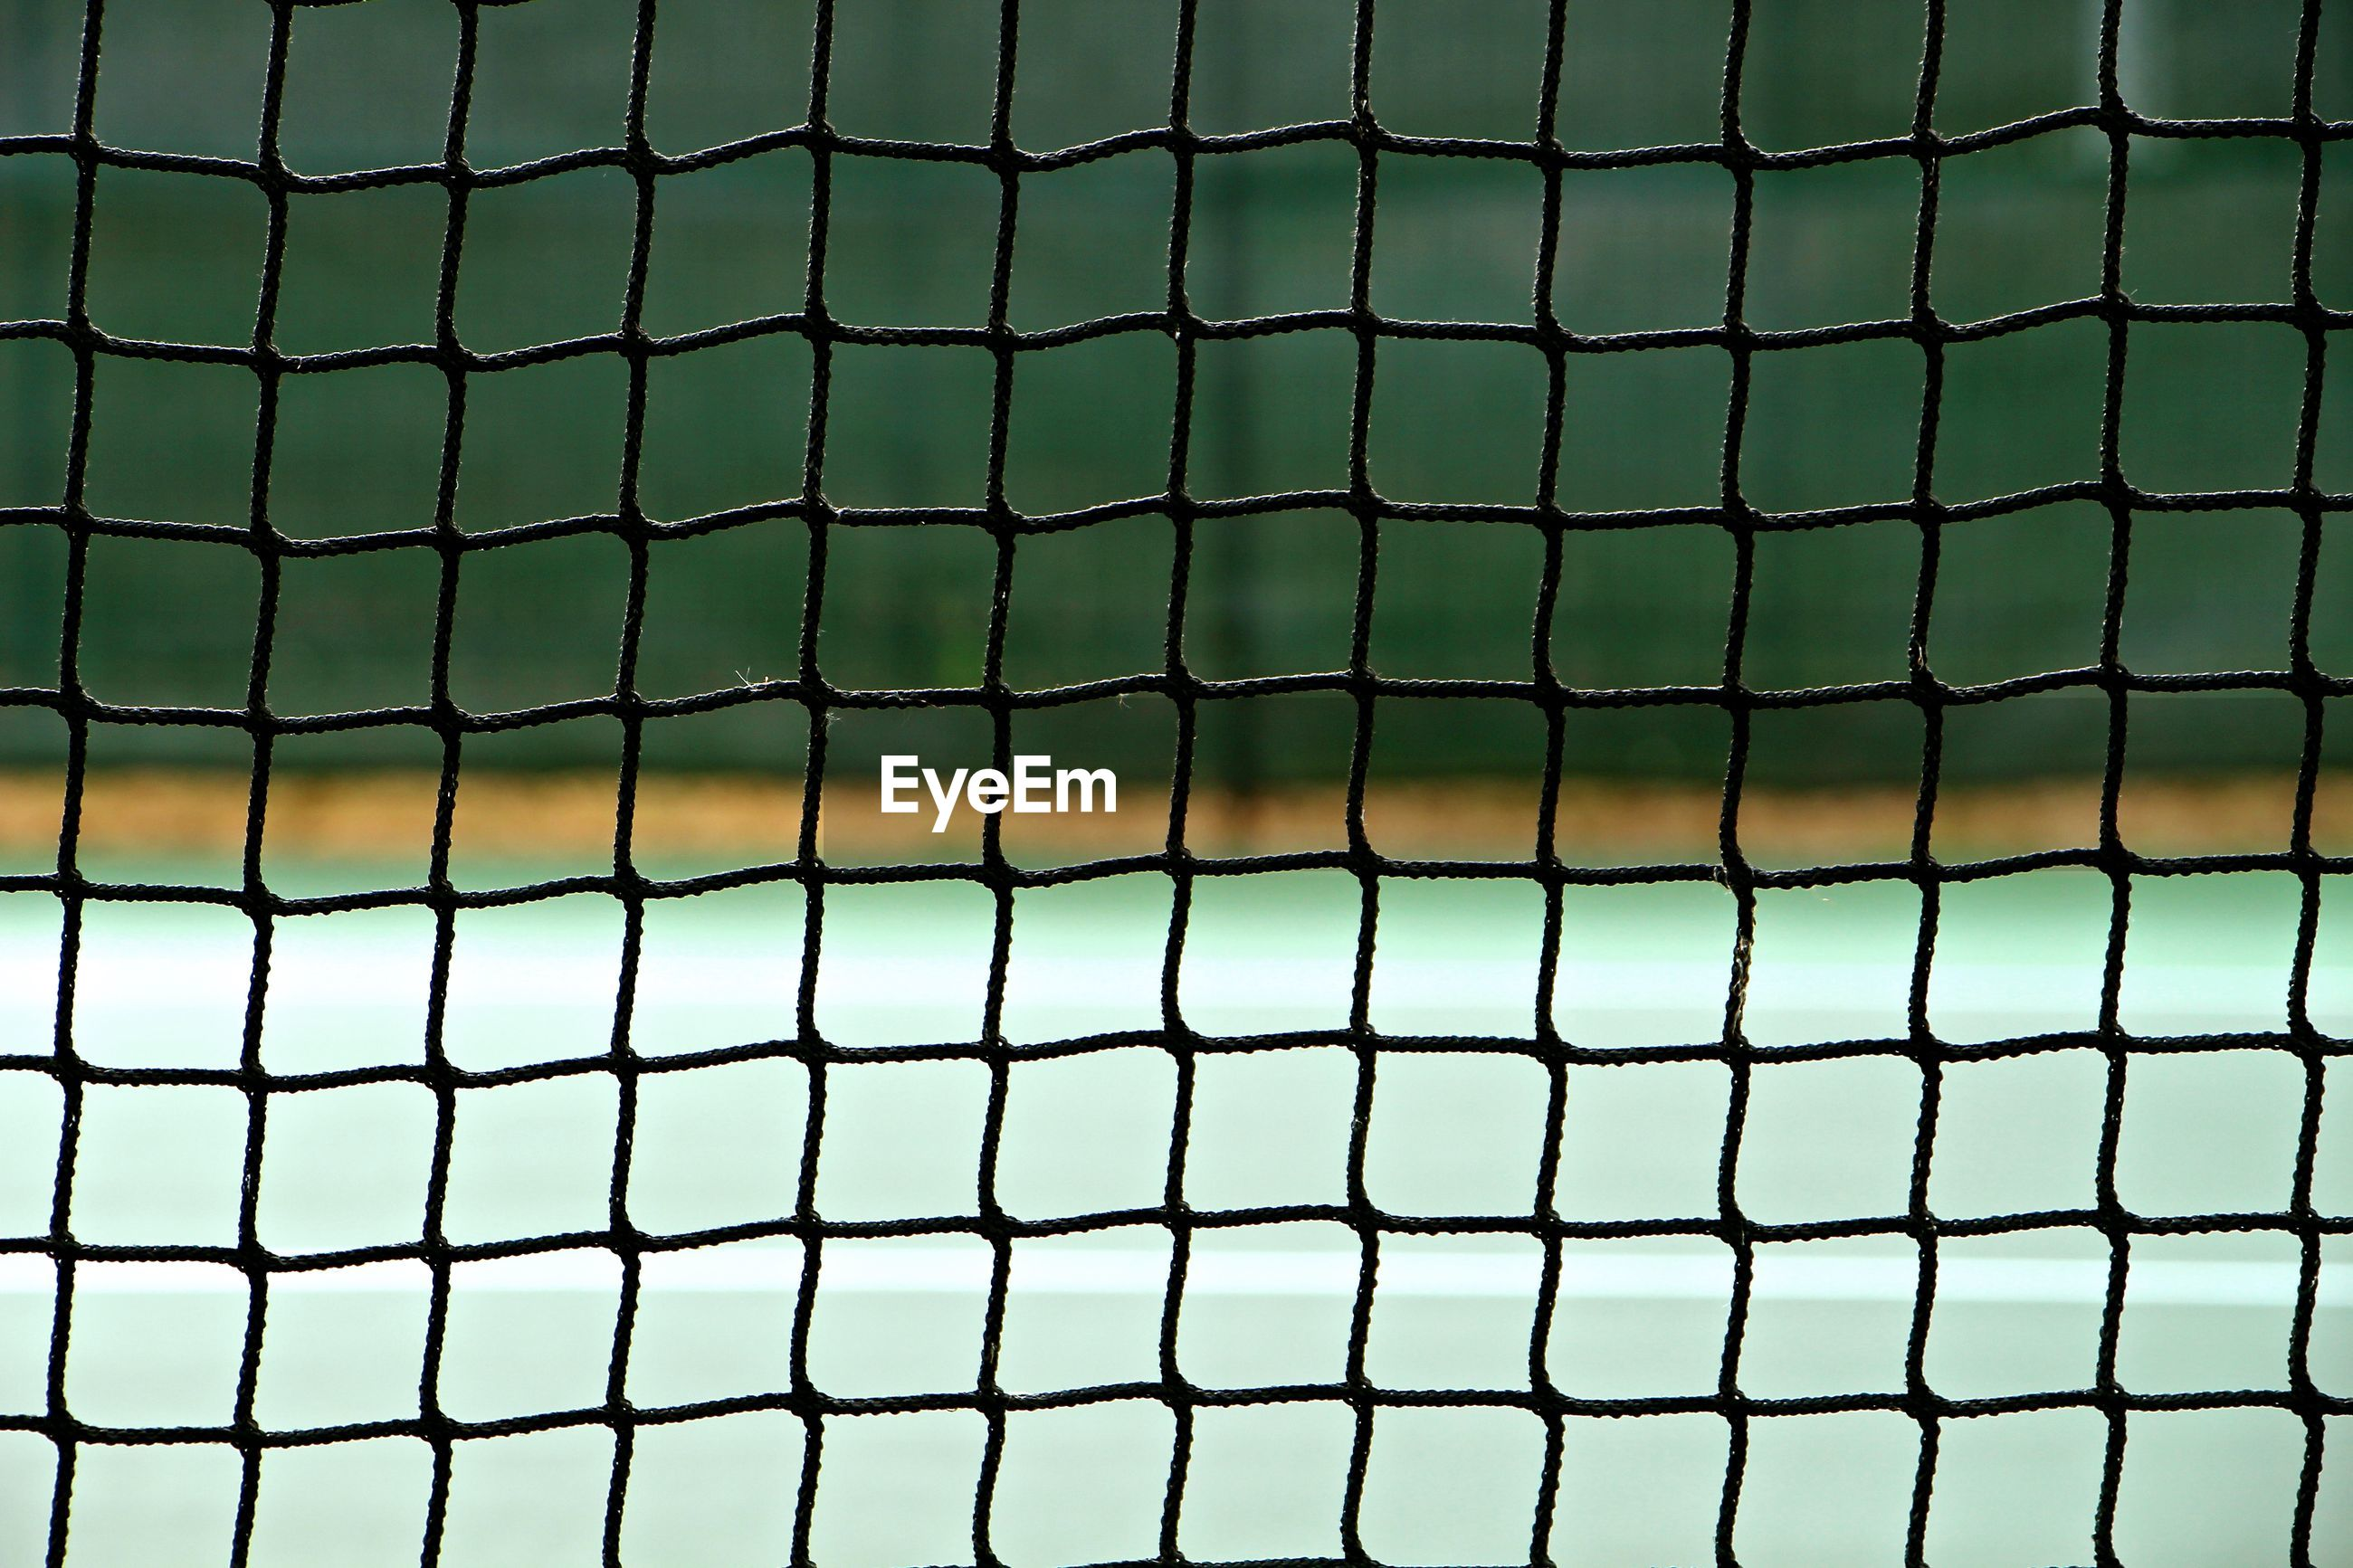 Close-up of net on sports court